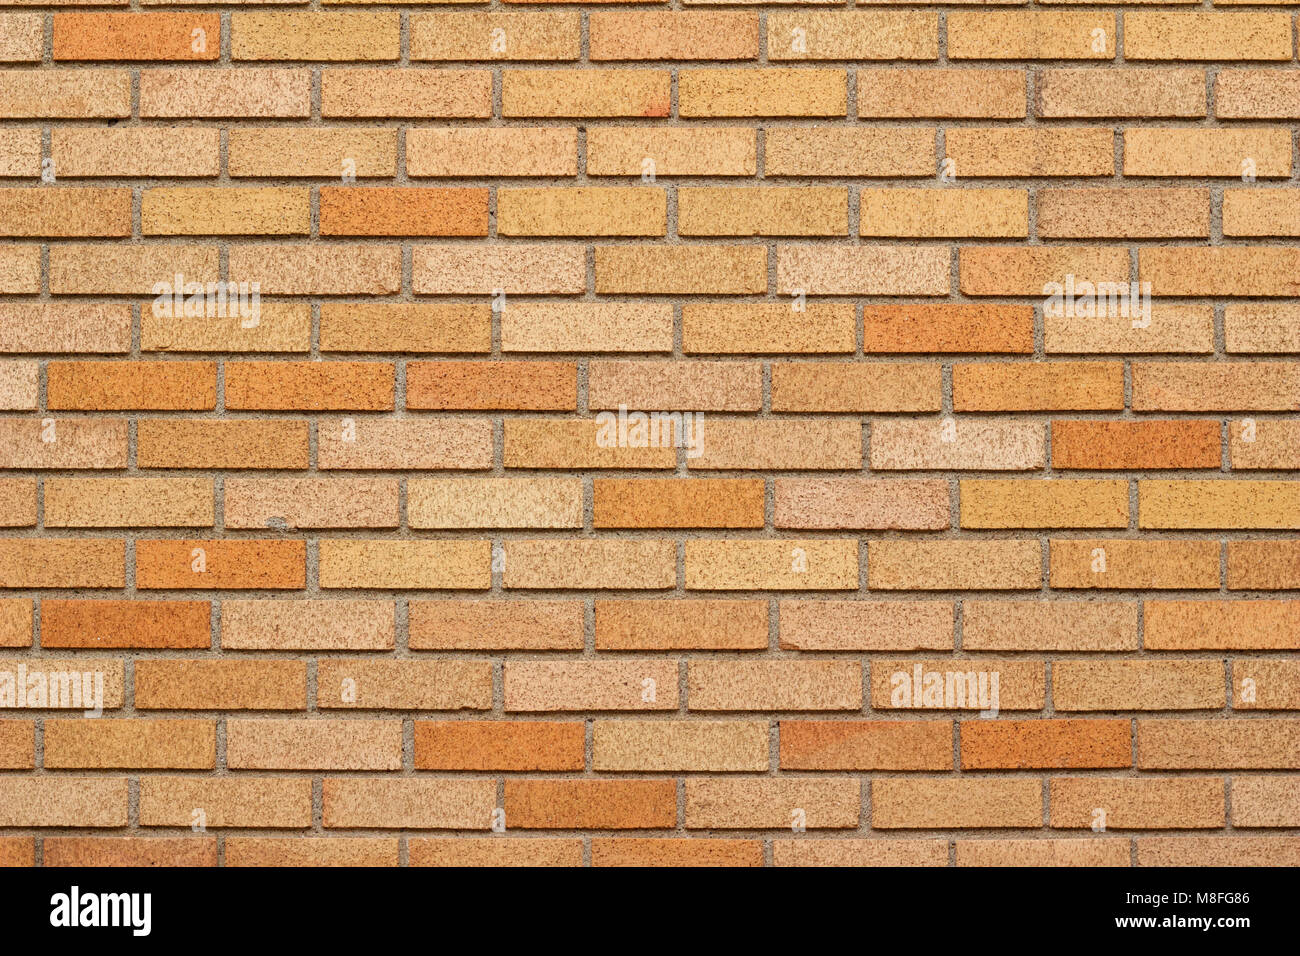 brick wall background featuring bricks in varying shades of gold and